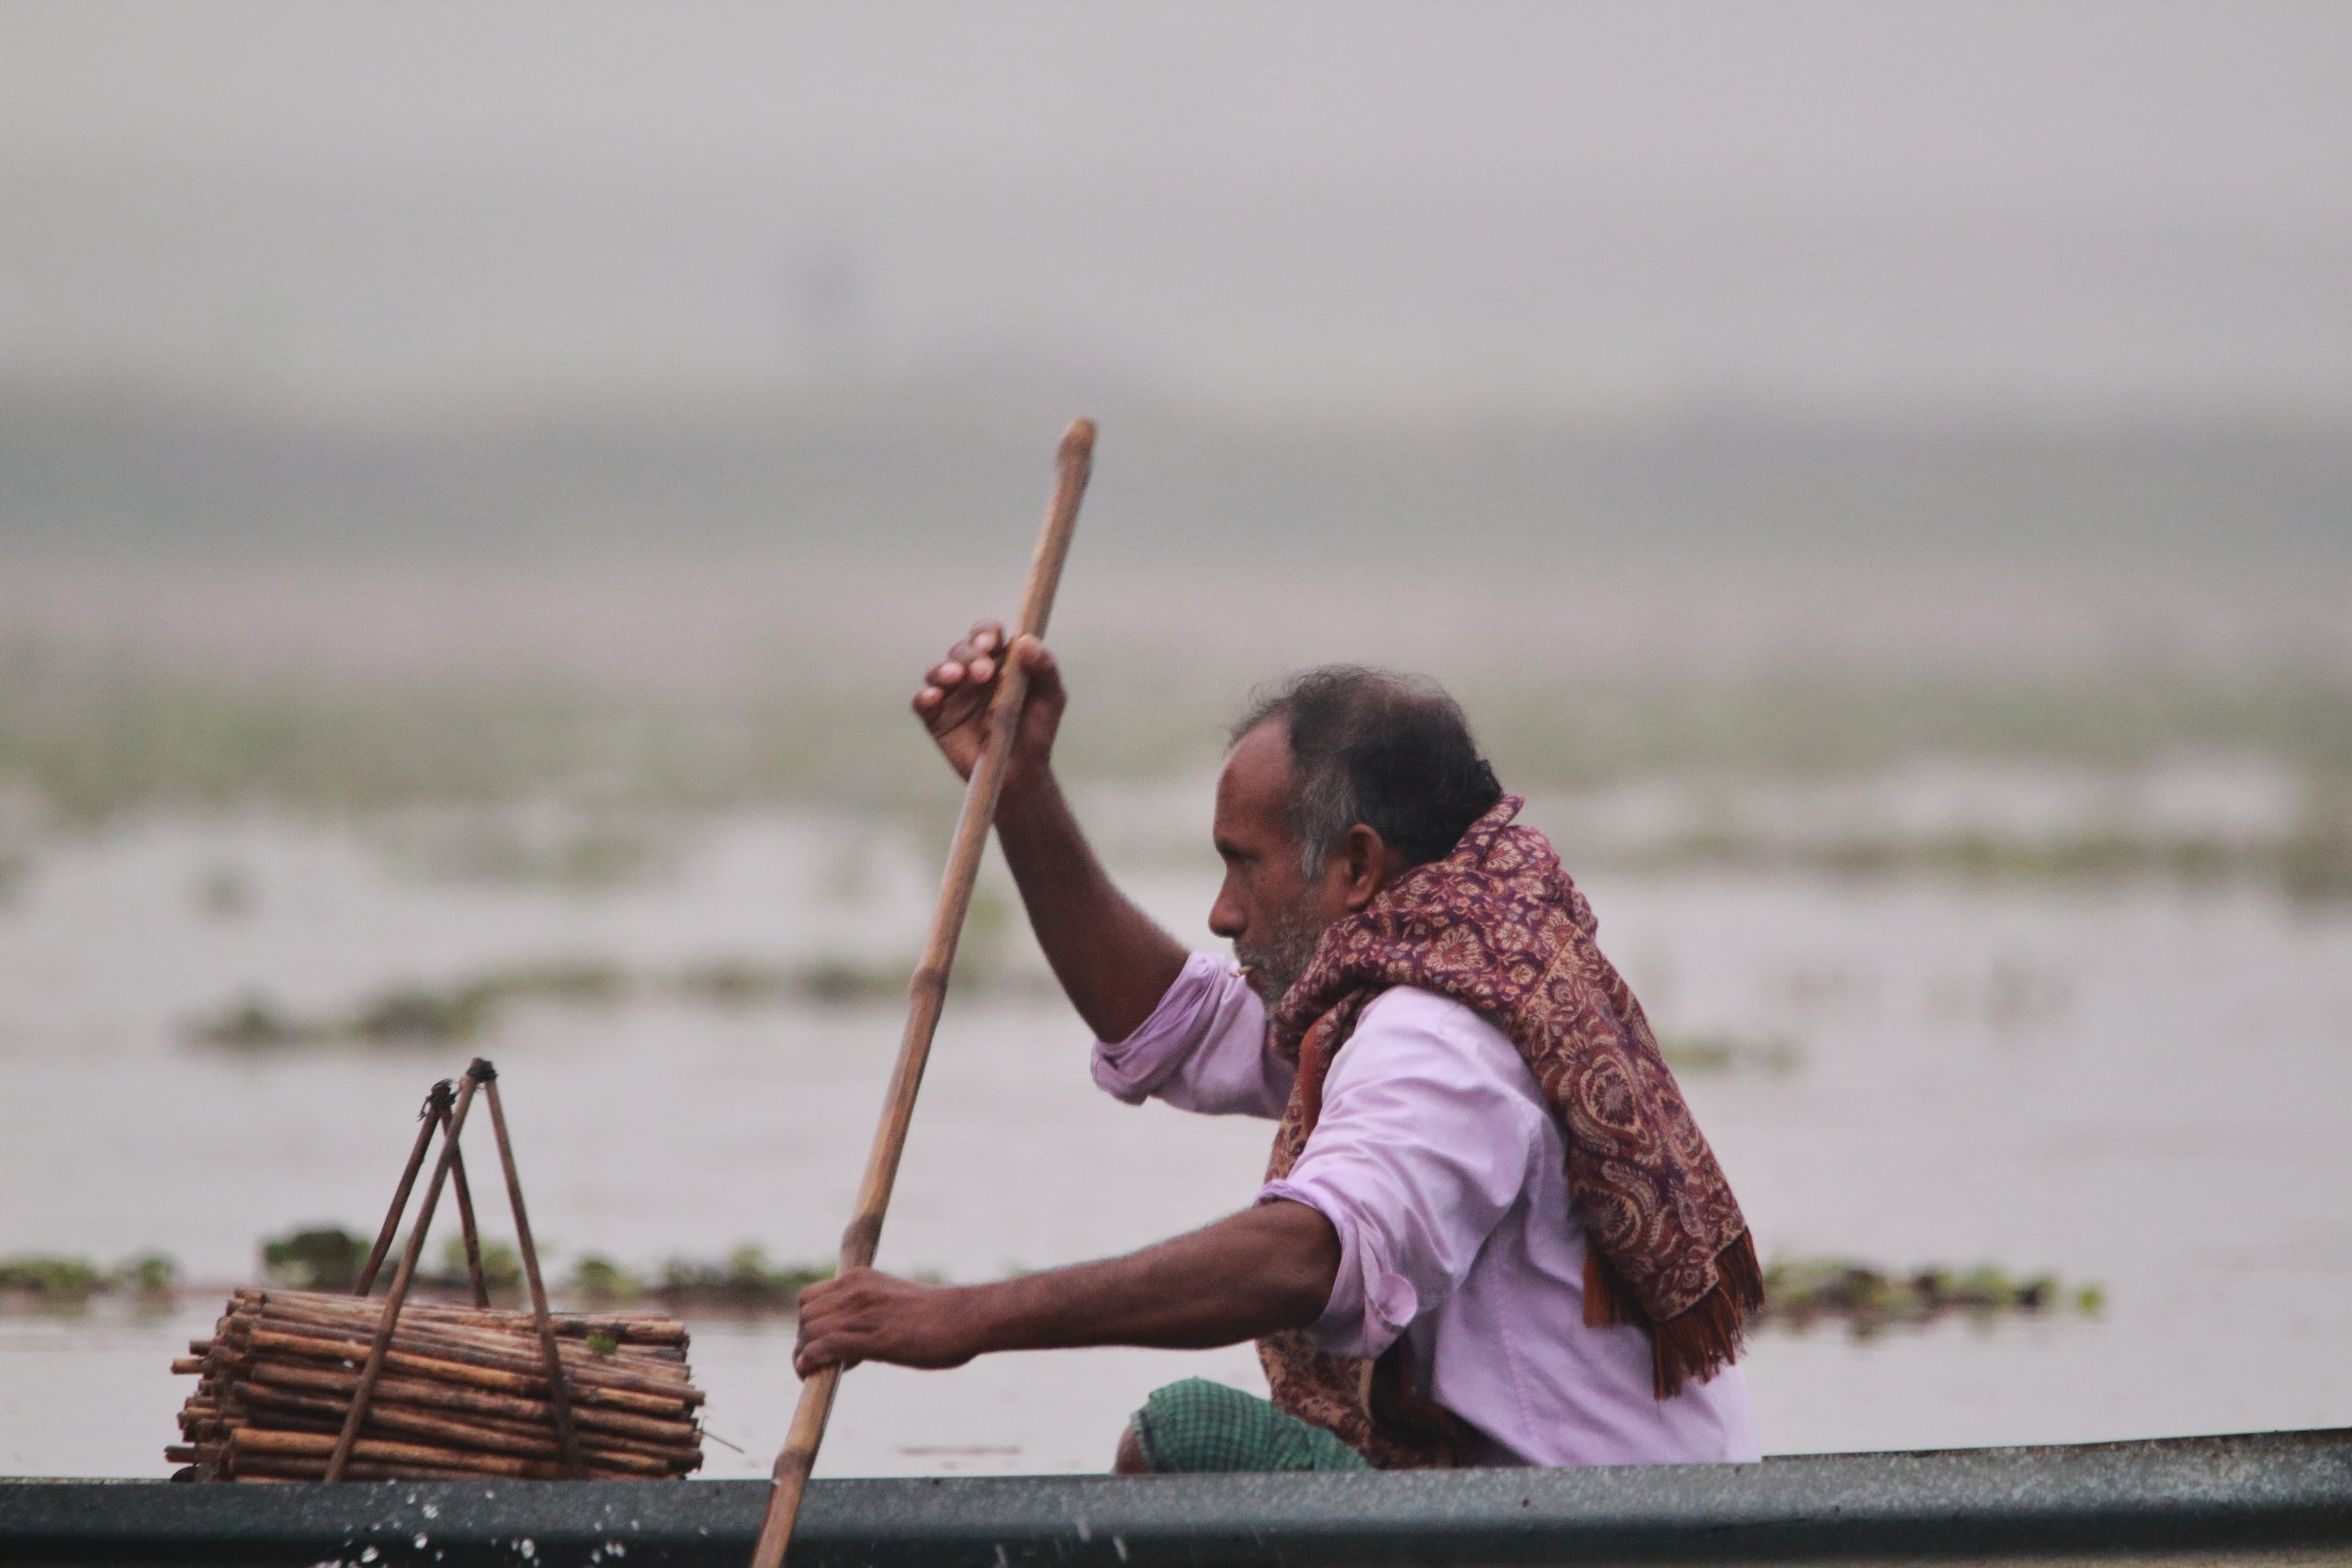 Old man riding a boat.